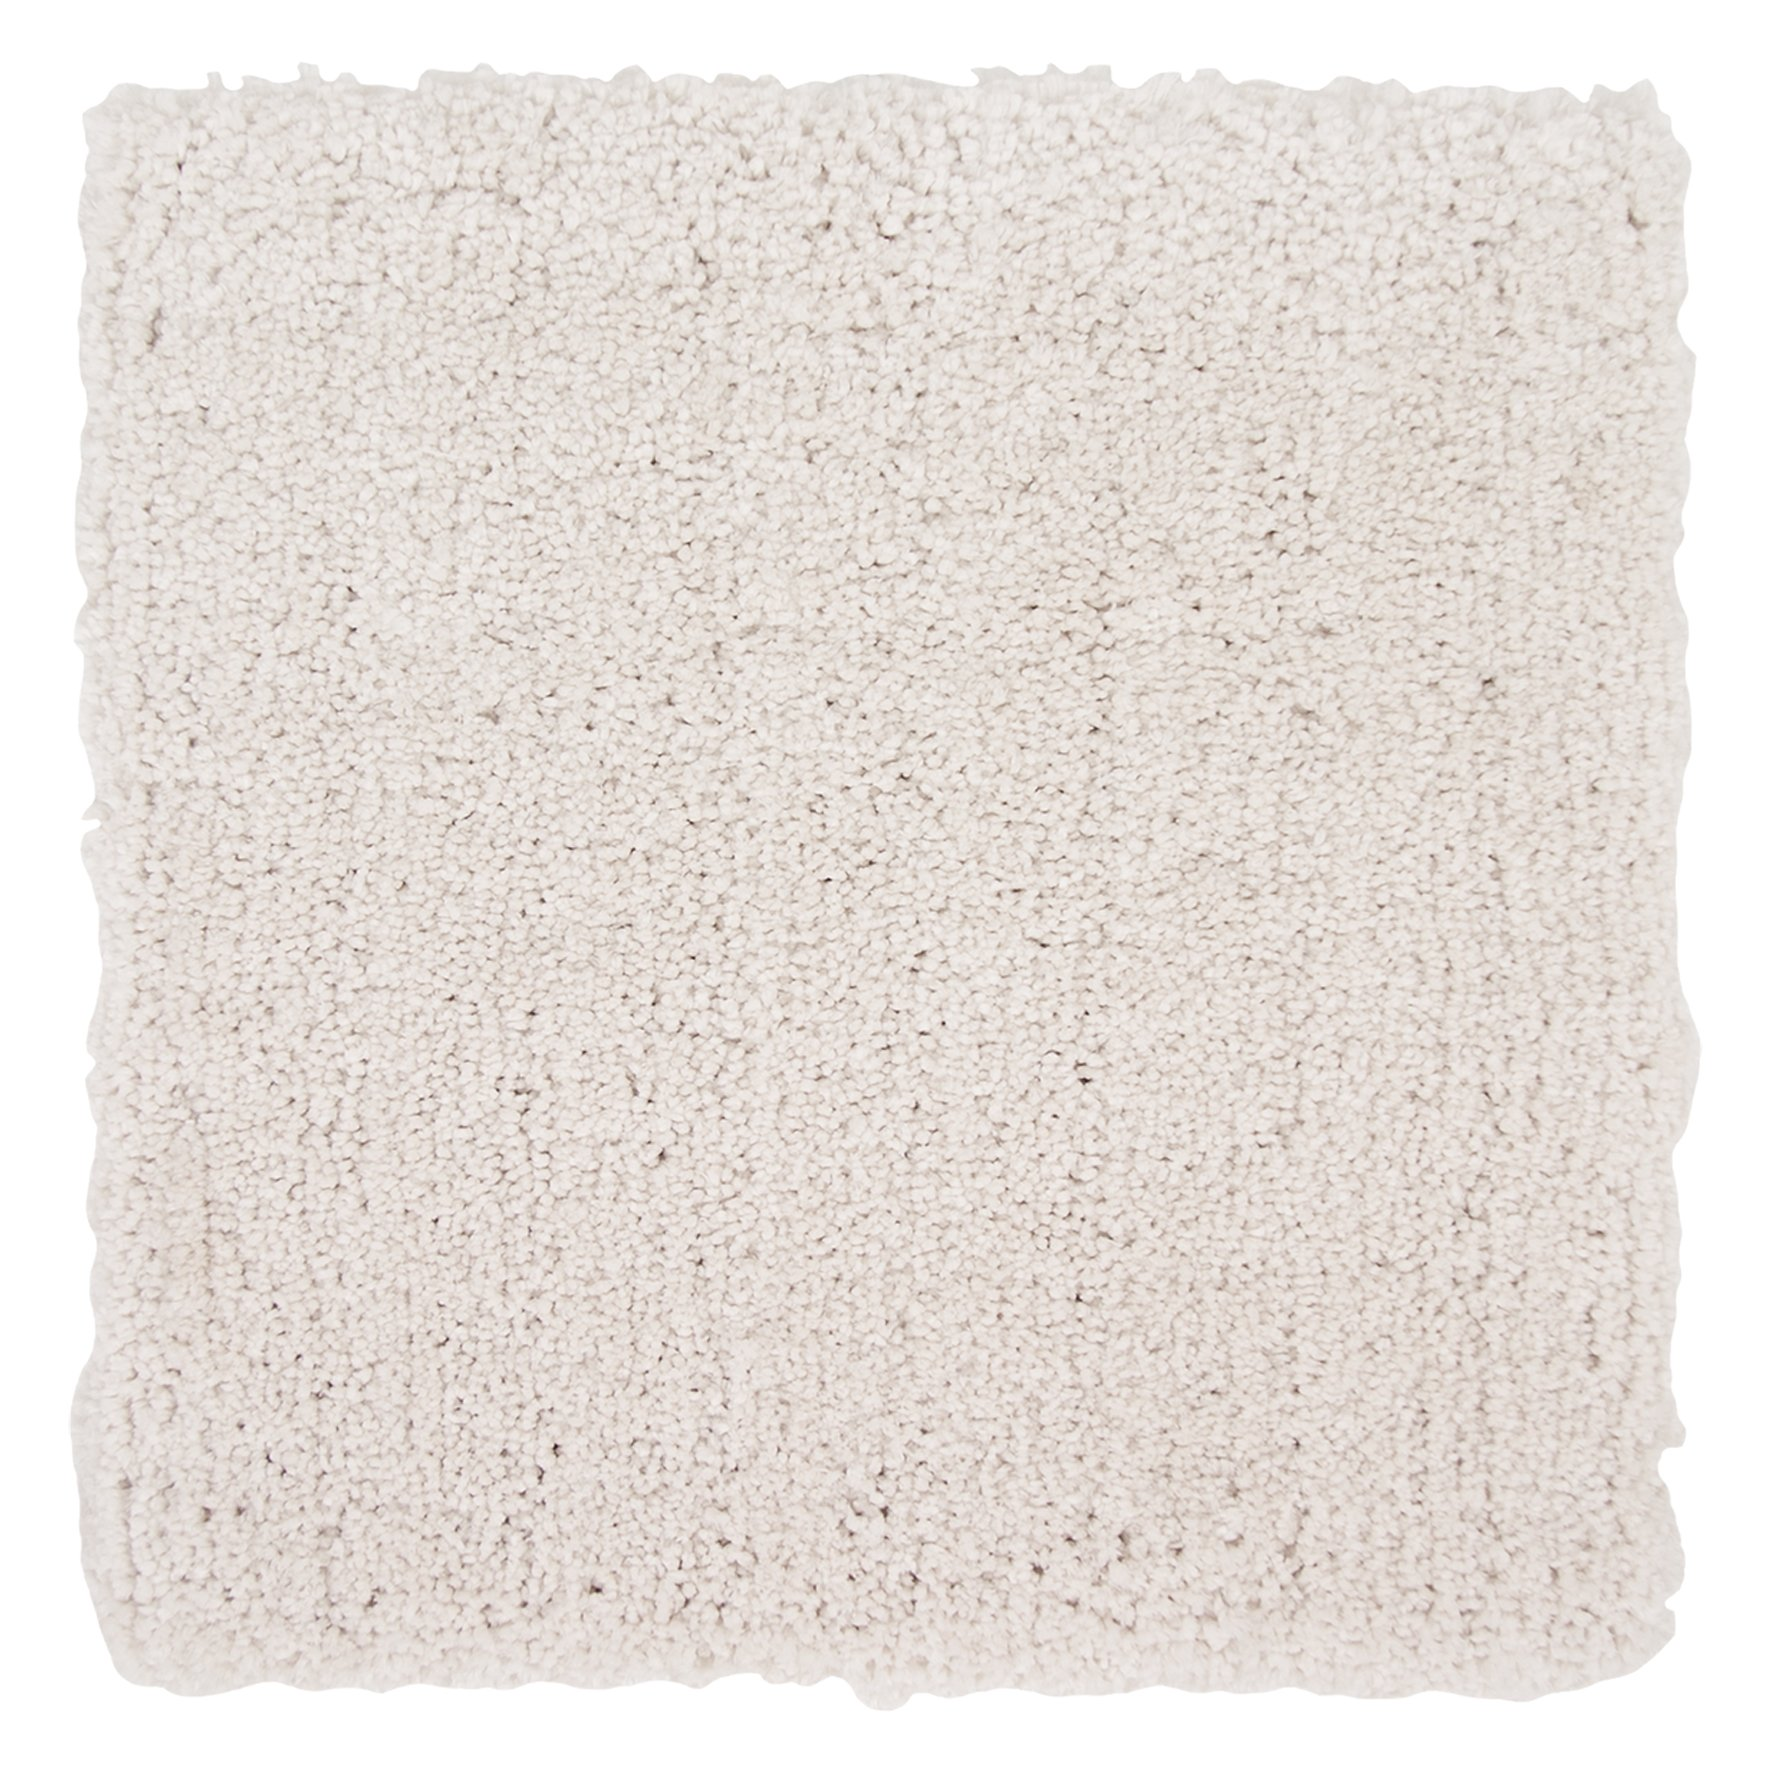 DIFFERNZ 31.102.61 Zara Bath Mat, White by Differnz